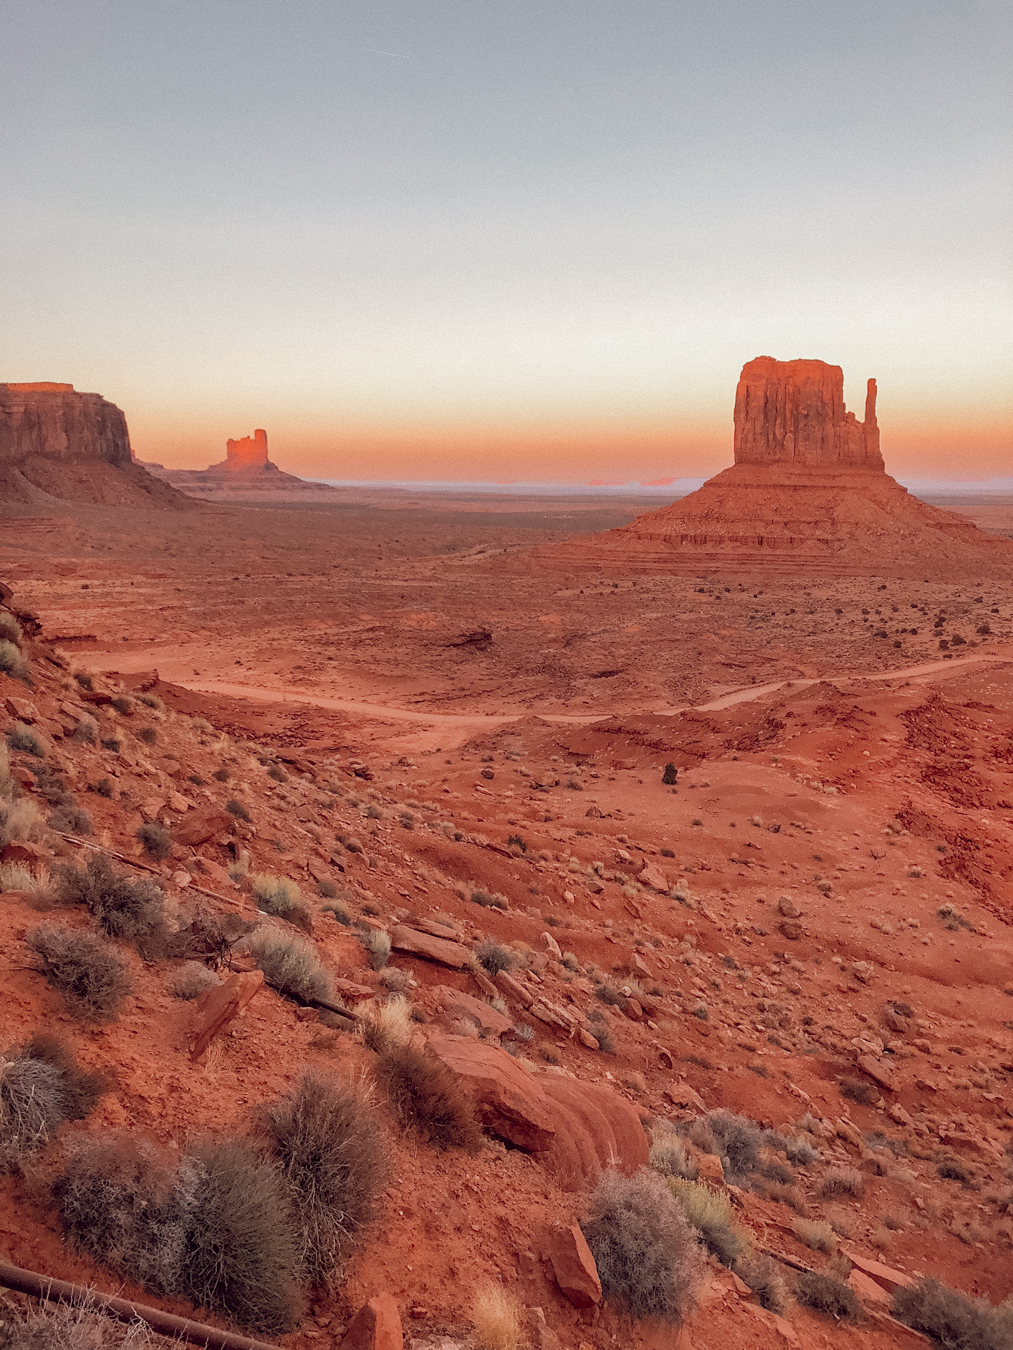 Blog-Mode-And-the-City-Lifestyle-voyage-roadtrip-USA-cote-ouest-grand-canyon-monument-valley-27